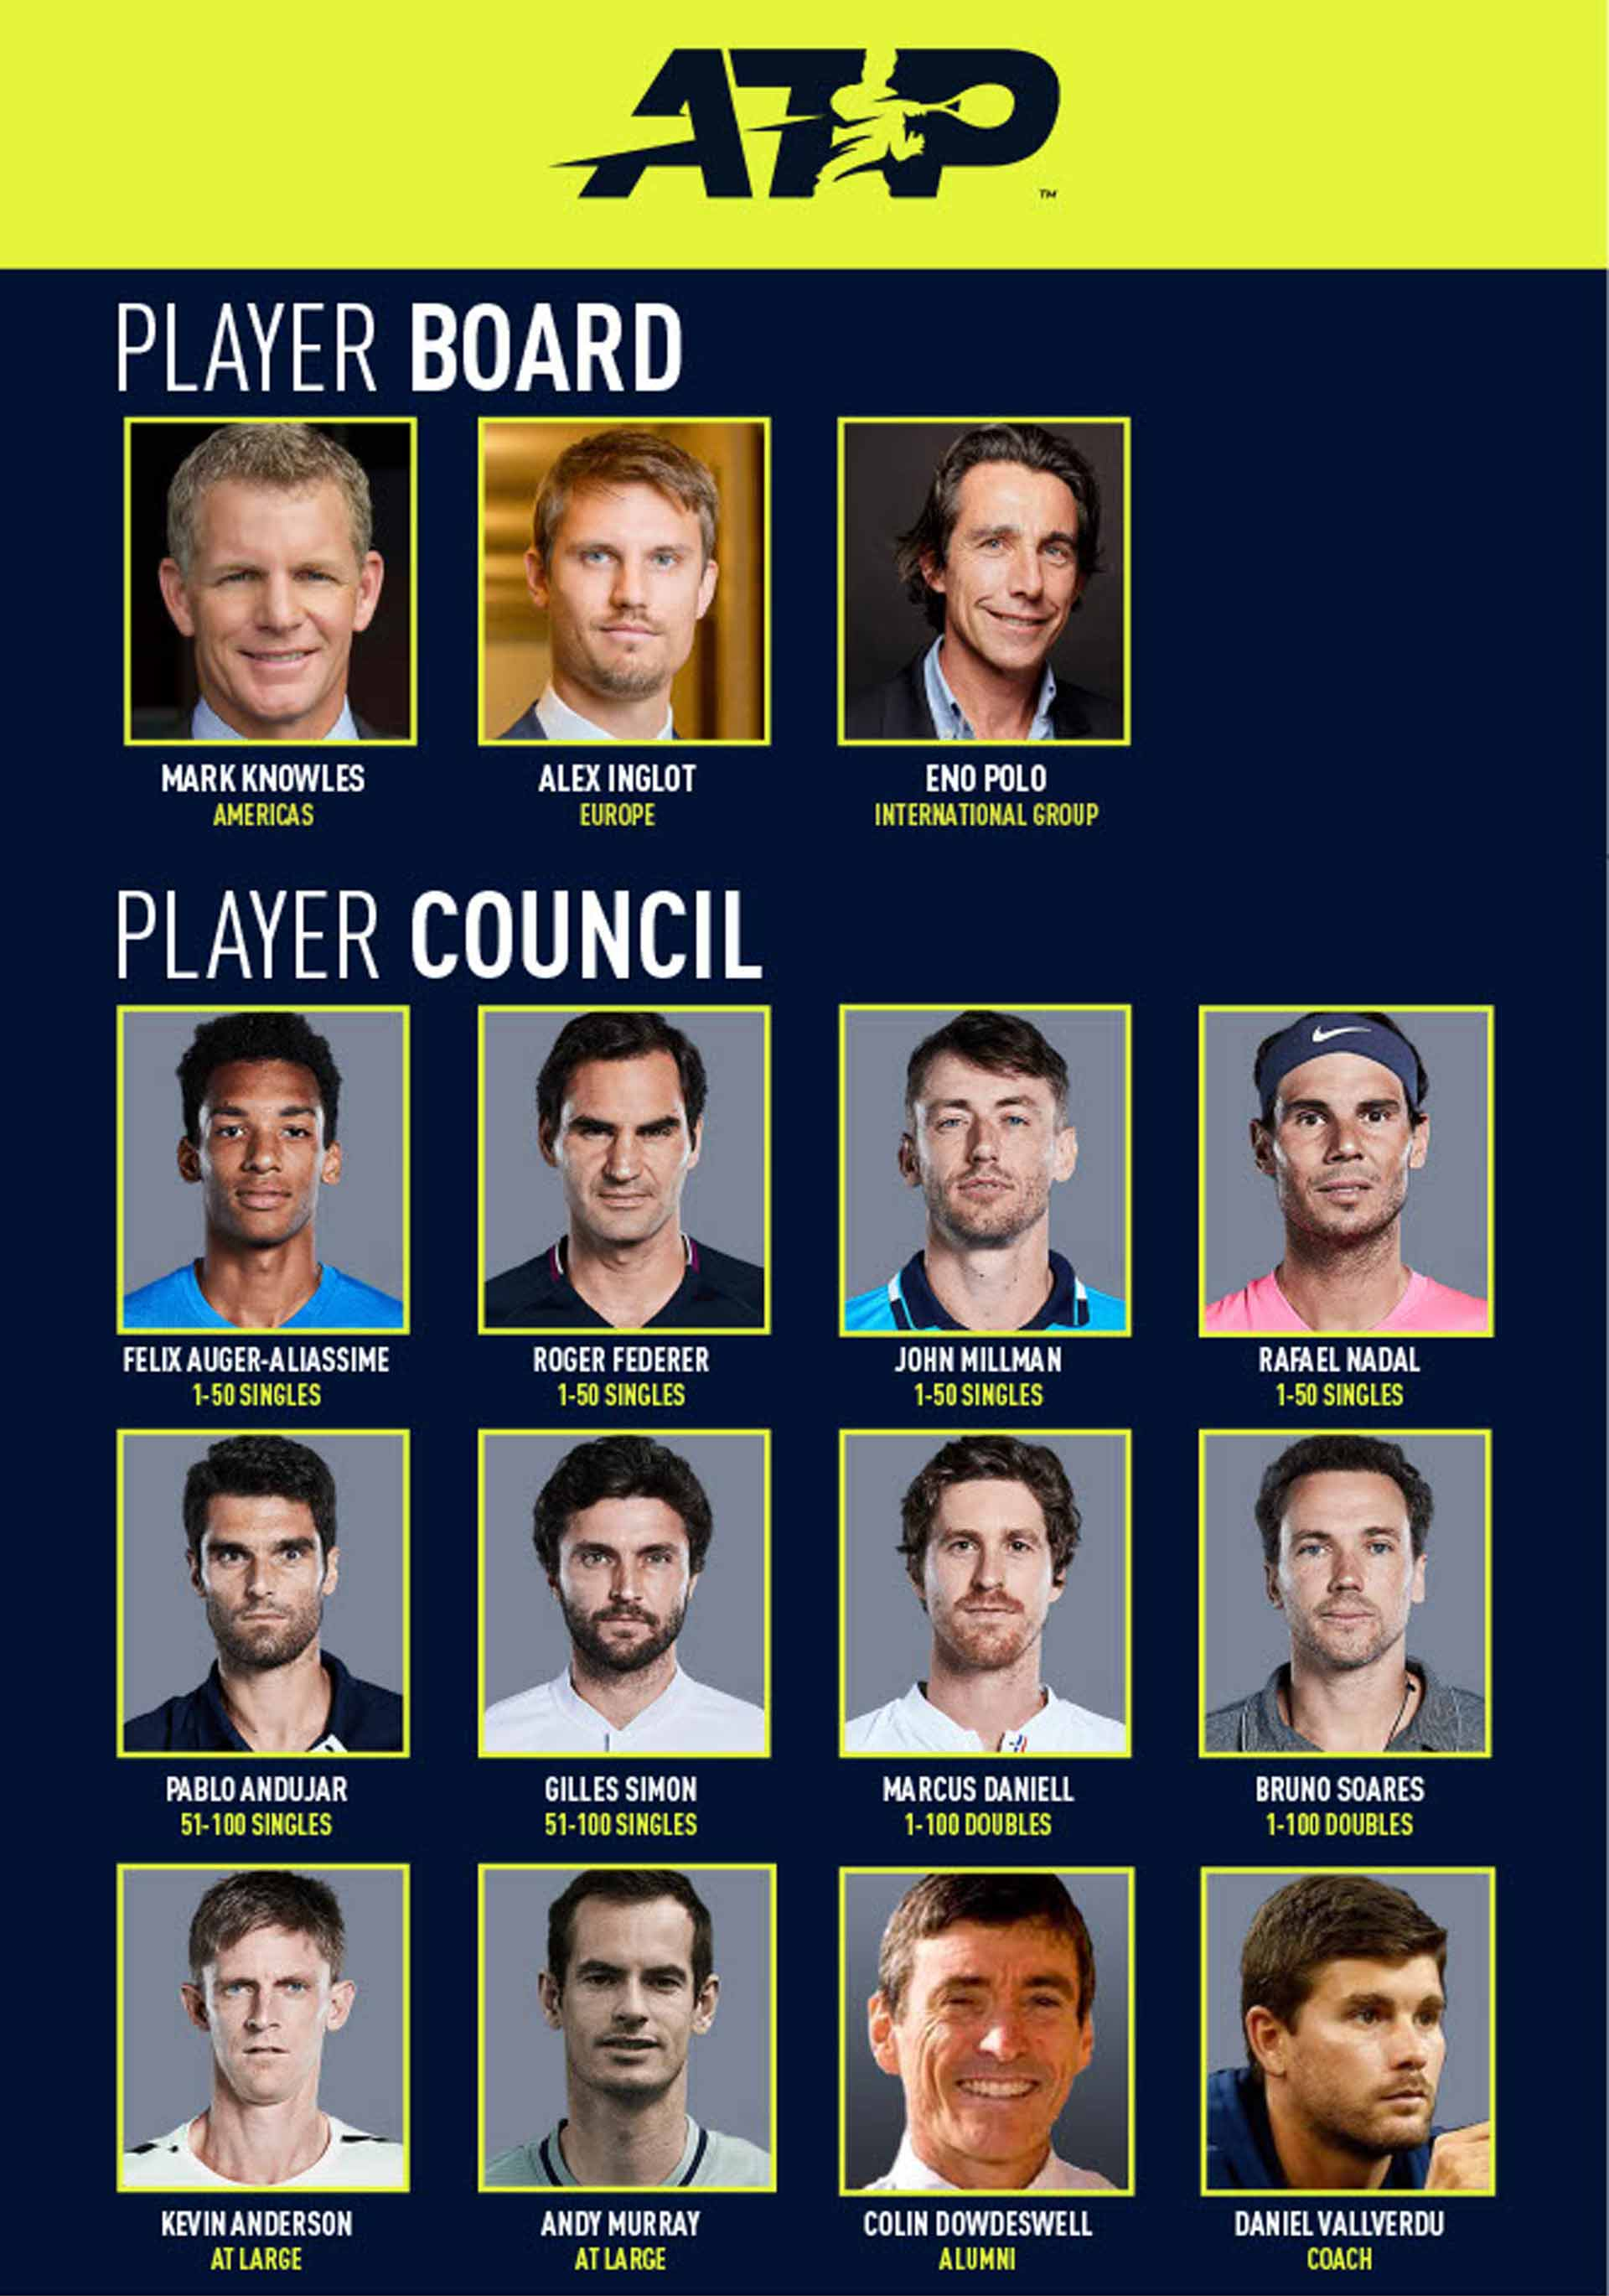 Player Board